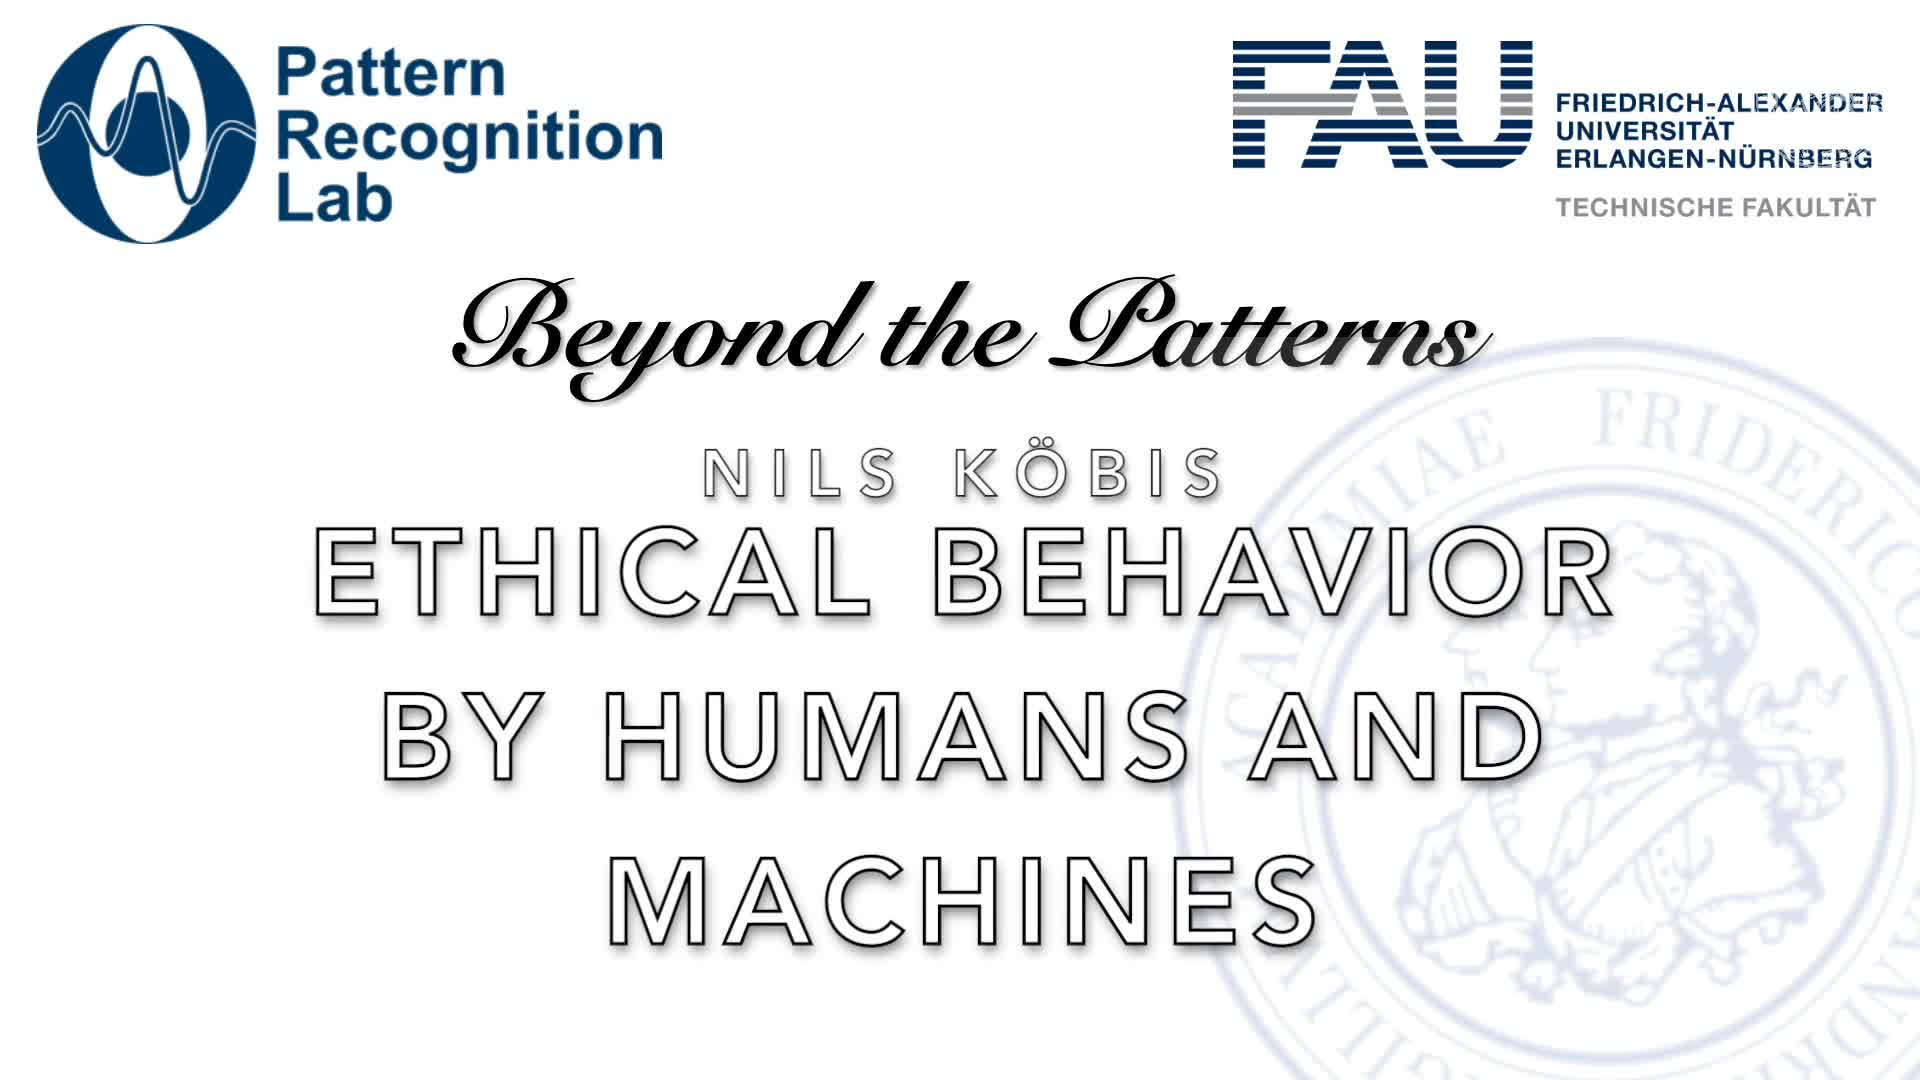 Beyond the Patterns - Nils Köbis: Ethical Behavior by Humans and Machines preview image